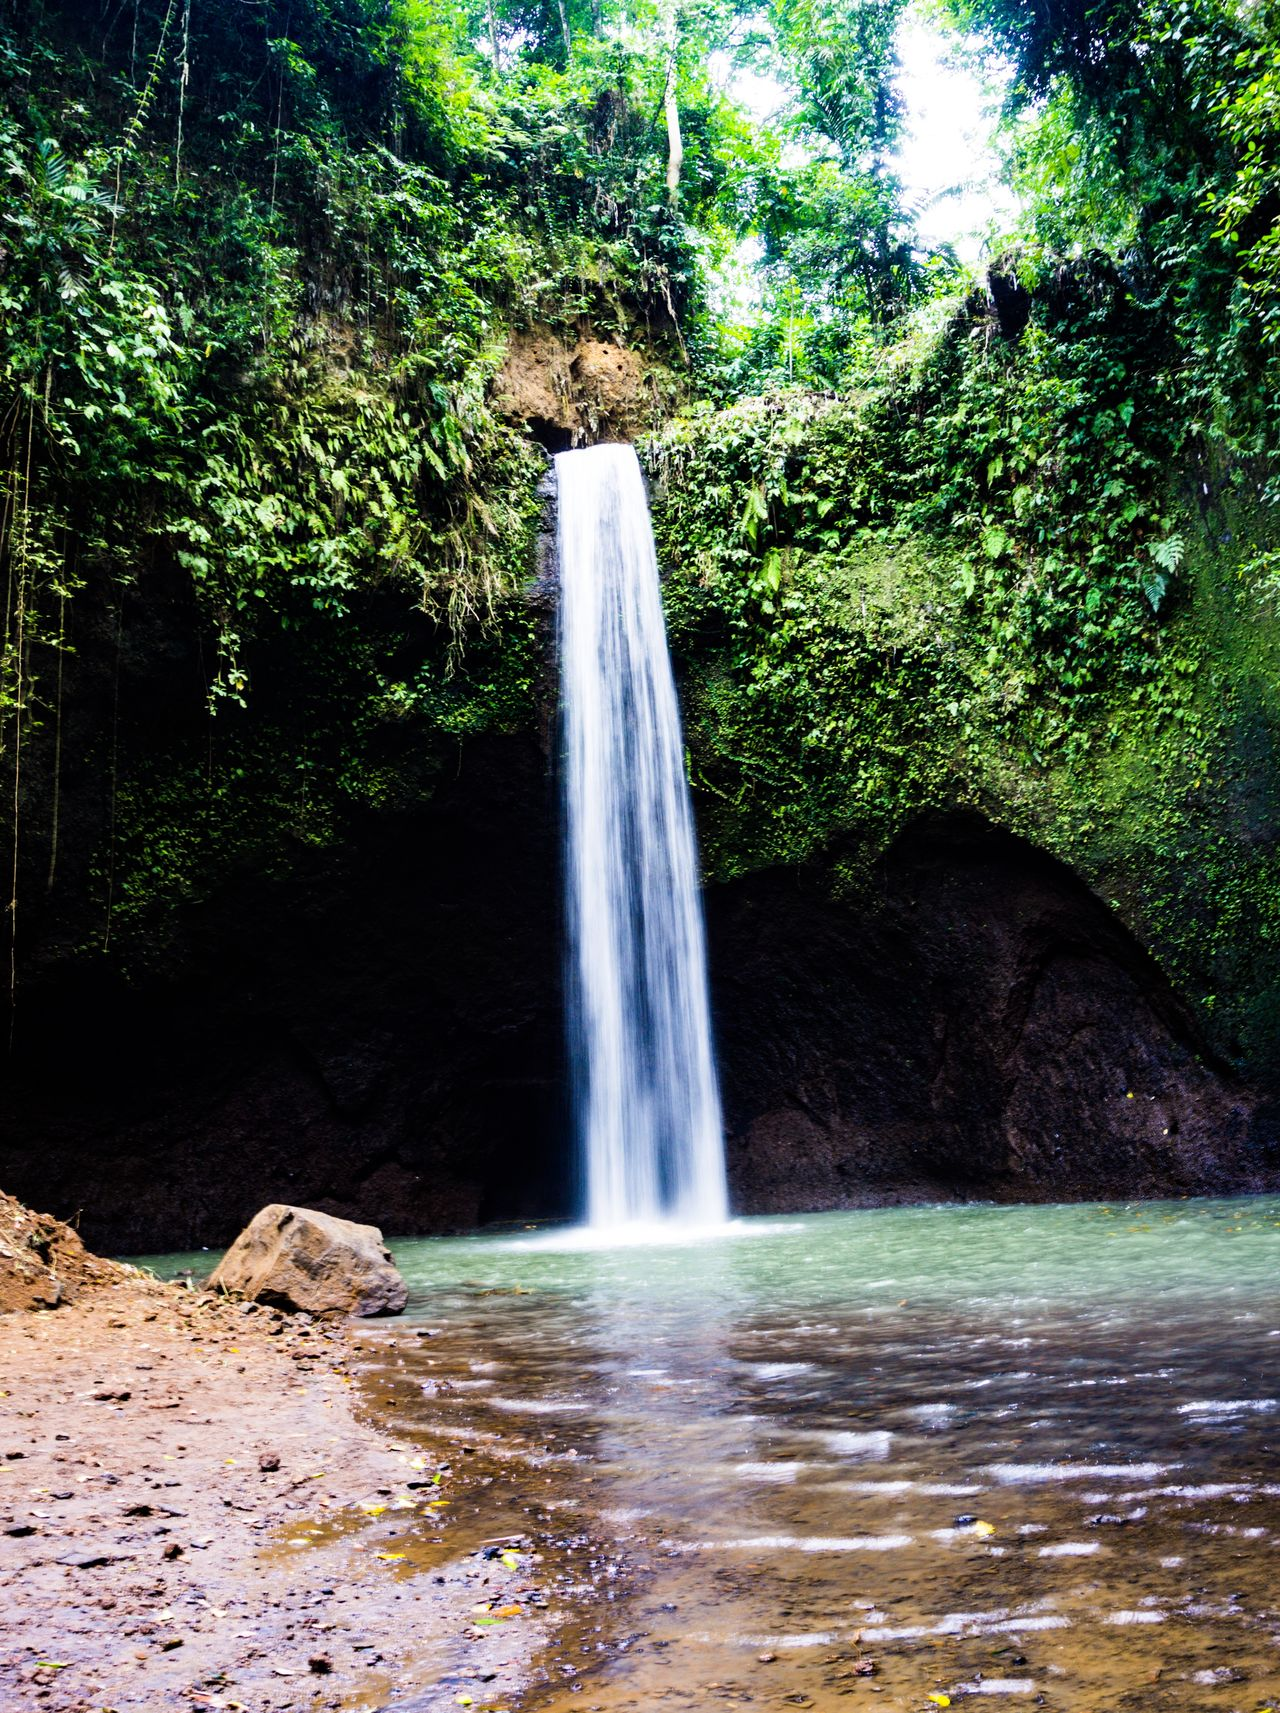 Beauty In Nature Blurred Motion Day Environment Flowing Water Forest Freshness Island Long Exposure Lost World Motion Nature No People Outdoors Plant Power In Nature Rock - Object Scenics Tranquil Scene Tranquility Travel Travel Destinations Tree Water Waterfall